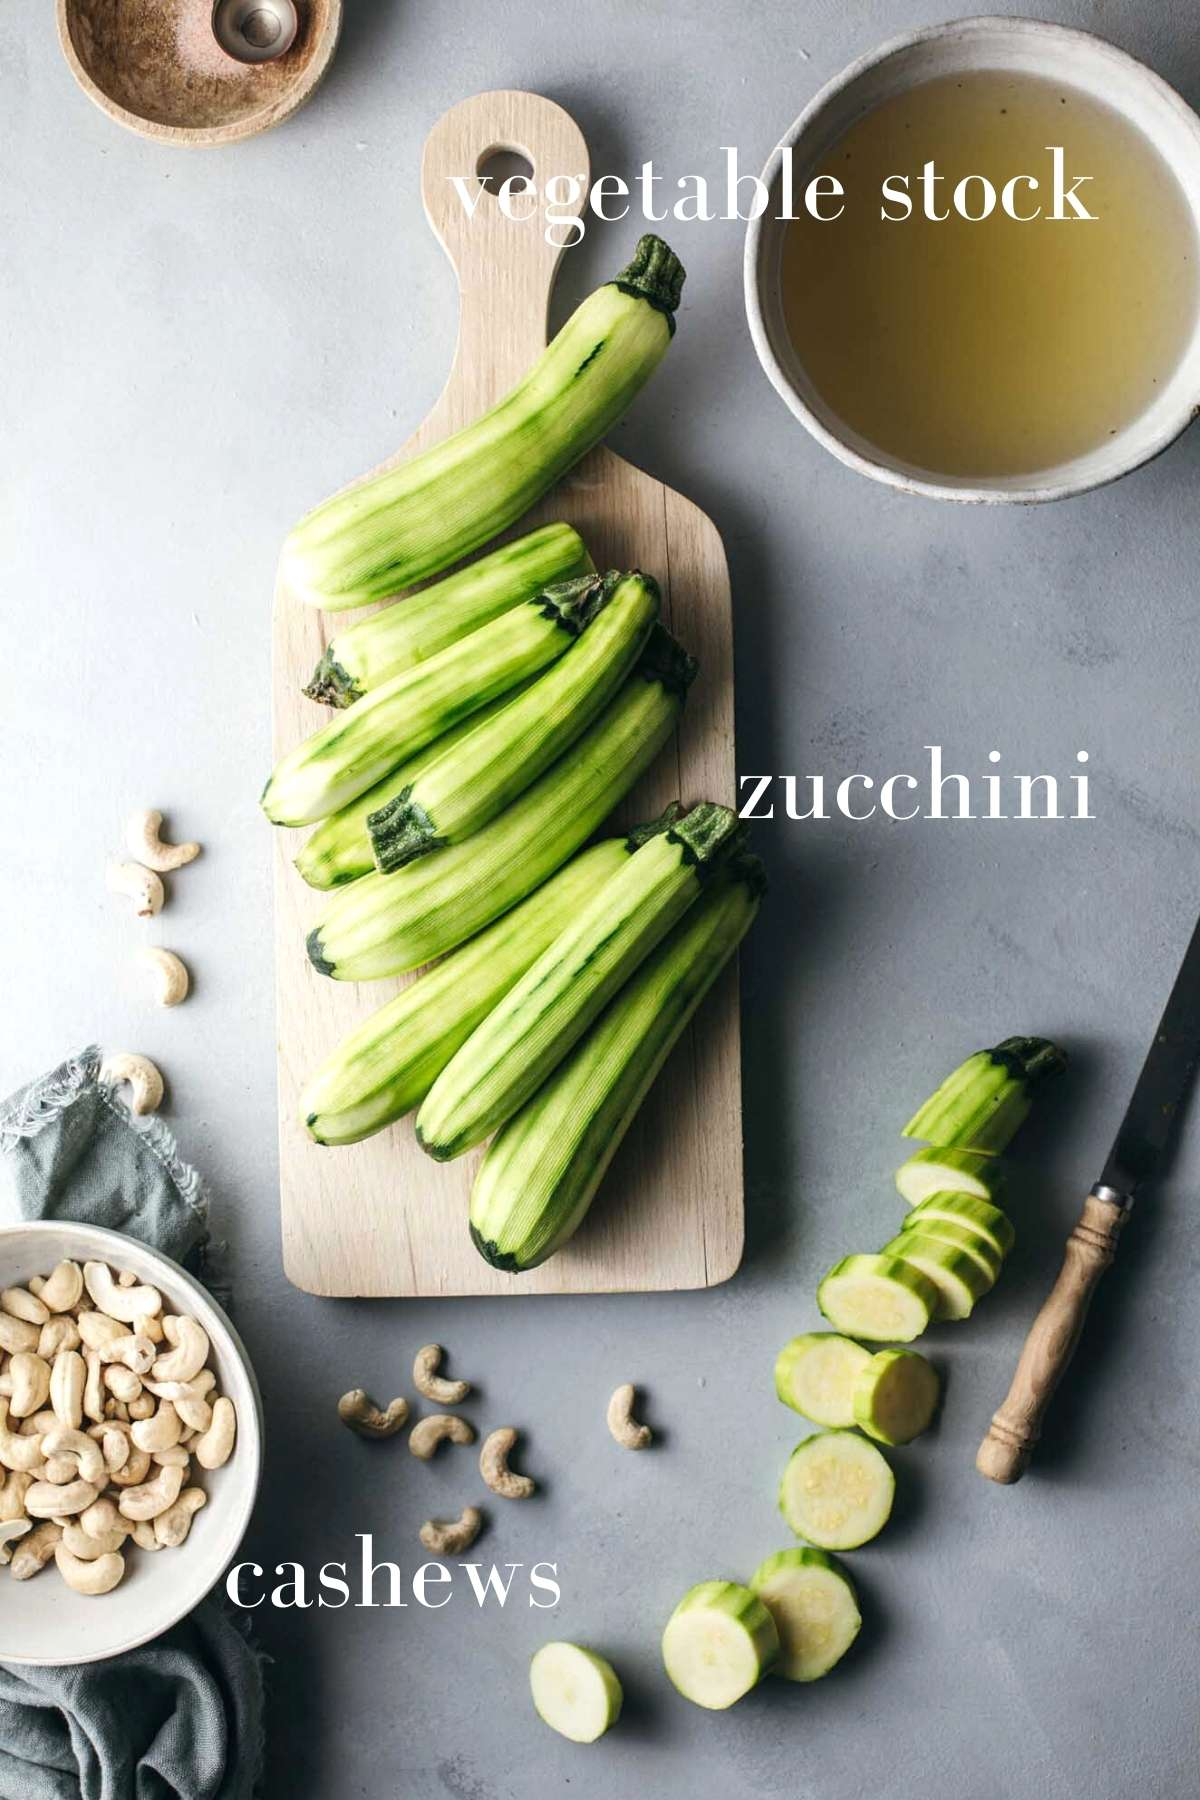 Zucchini soup ingredients on a chopping board.